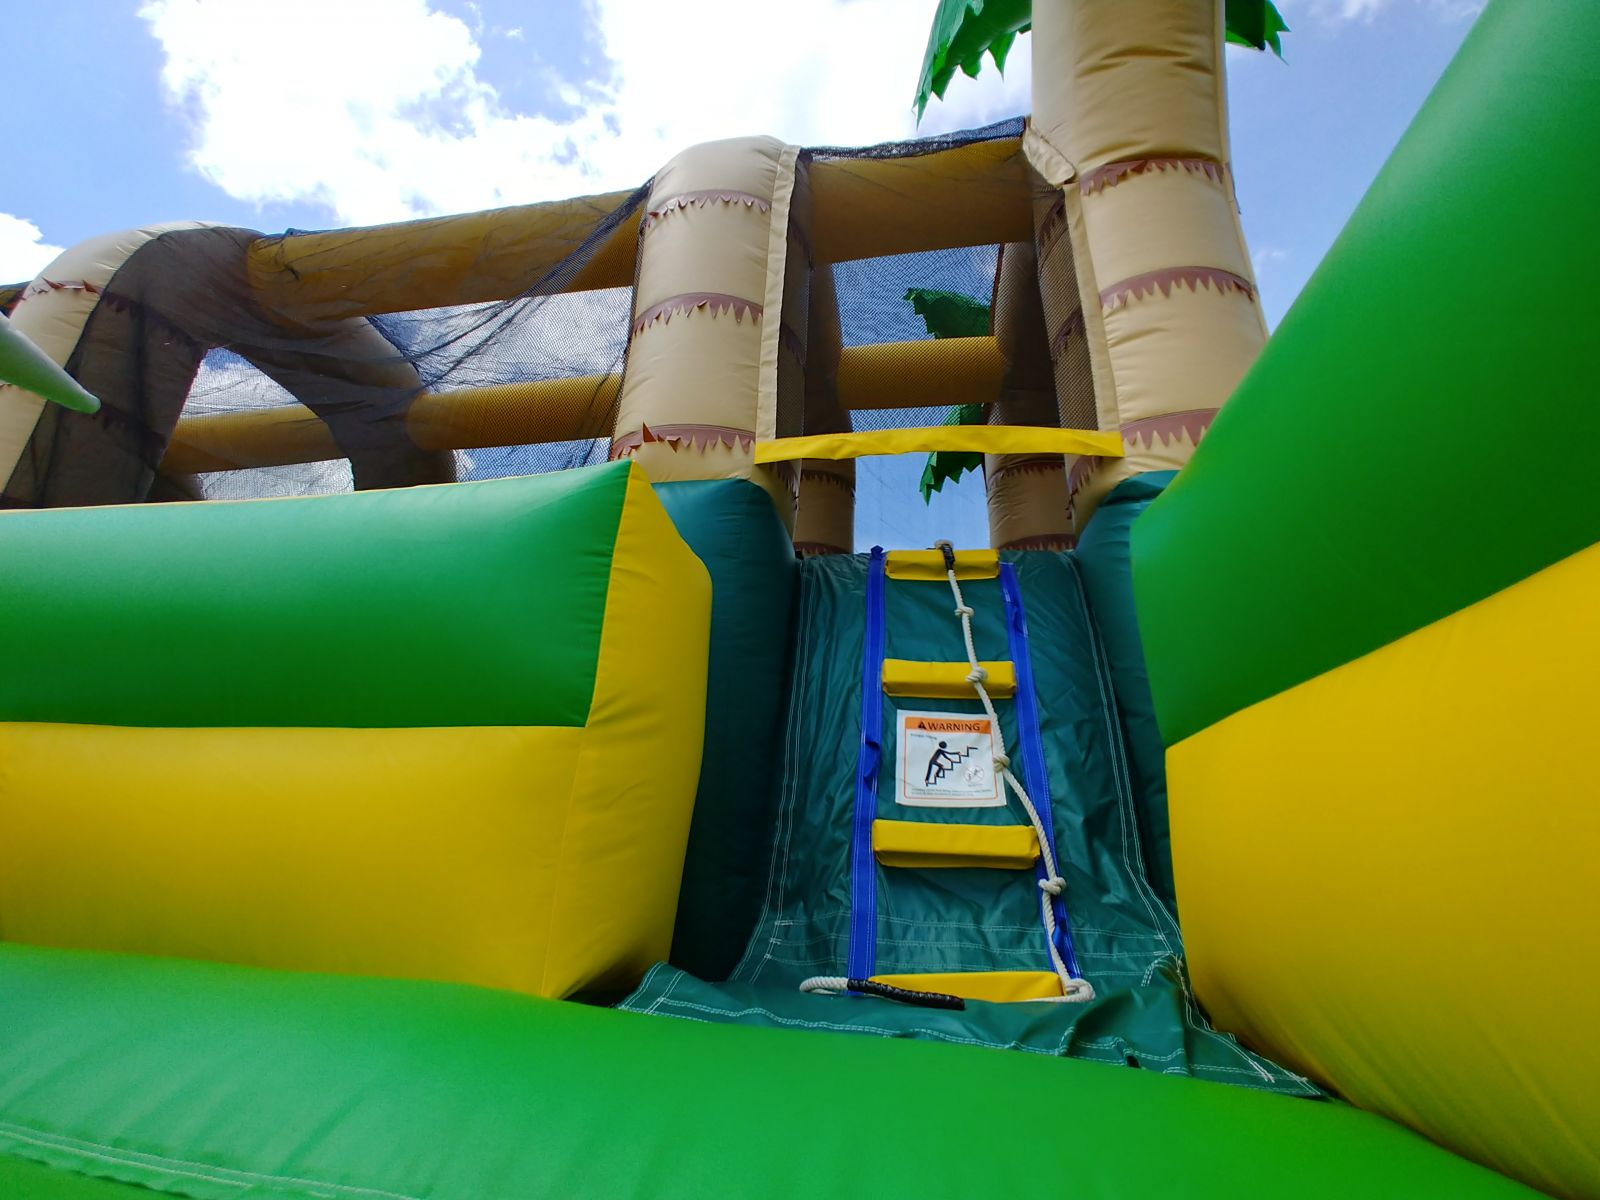 Climbing challenge to ball hop obstacles inside obstacle course rental